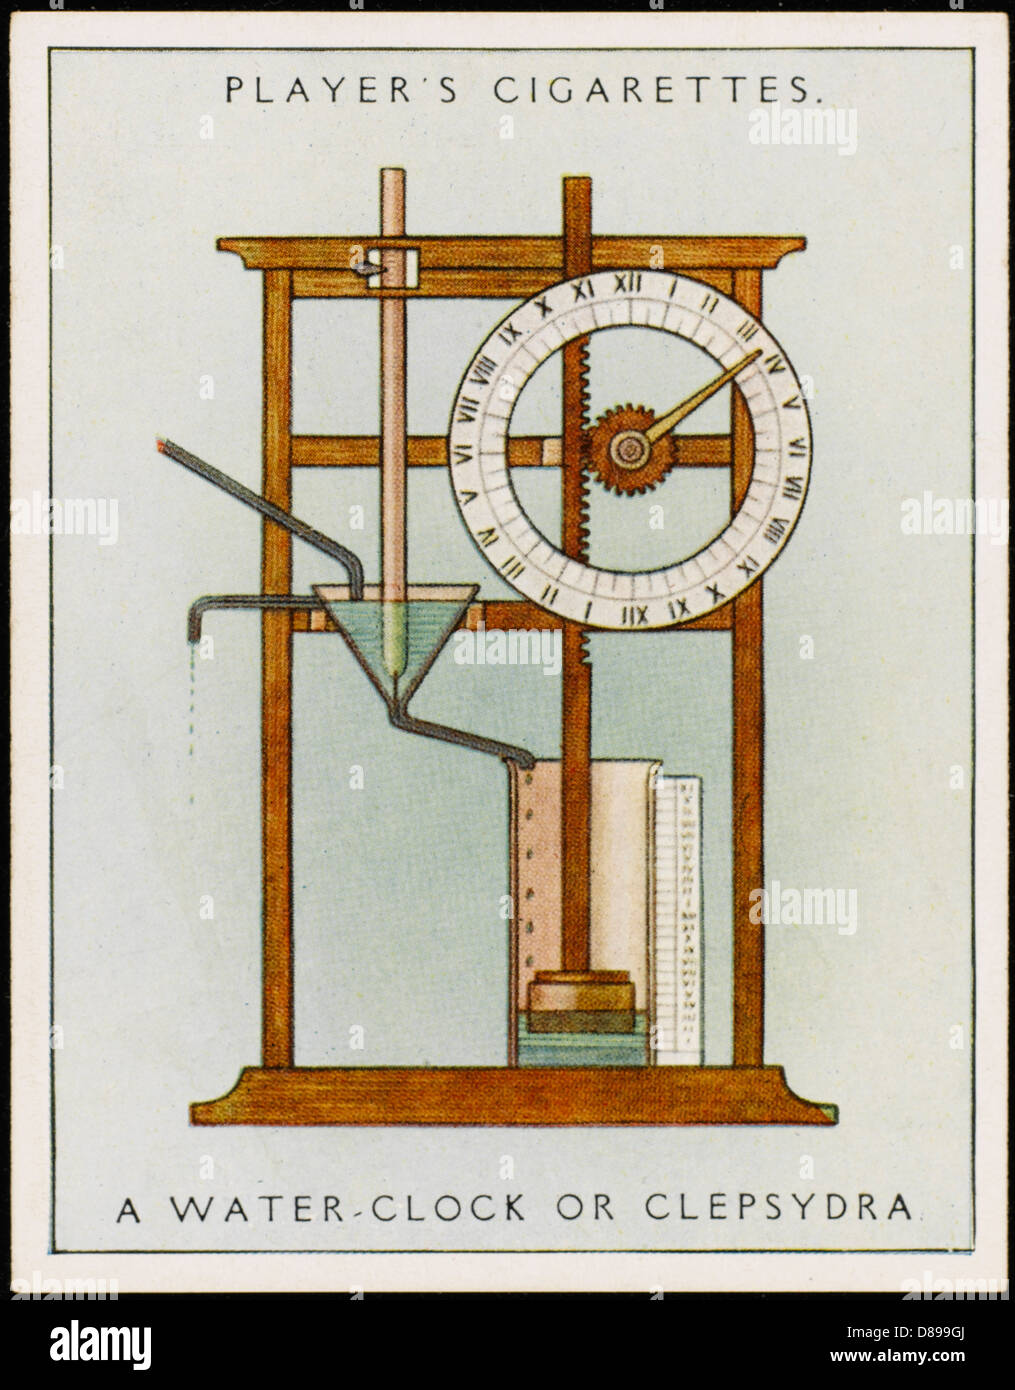 a history of clepsydra a water clock Mla format george arents collection, the new york public library a water-clock or clepsydra the new york public library digital collections.